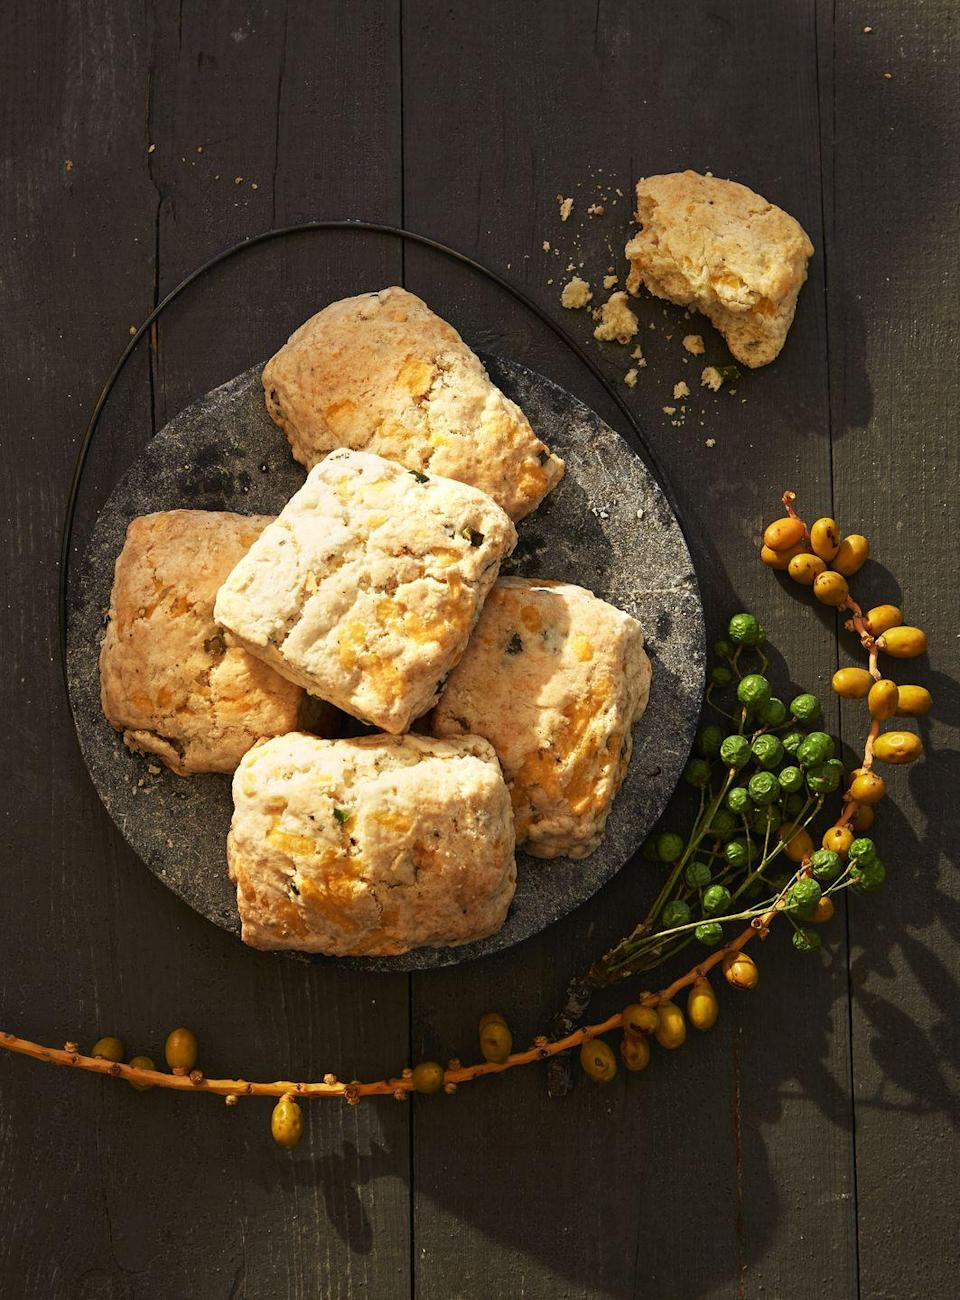 "<p>Once you've mastered the classic, try this melt-in-your-mouth cheddar variety. </p><p><em><a href=""https://www.goodhousekeeping.com/food-recipes/a41104/fluffy-apple-cheddar-biscuits-recipe/"" rel=""nofollow noopener"" target=""_blank"" data-ylk=""slk:Get the recipe for Fluffy Apple-Cheddar Biscuits »"" class=""link rapid-noclick-resp"">Get the recipe for Fluffy Apple-Cheddar Biscuits »</a></em></p>"